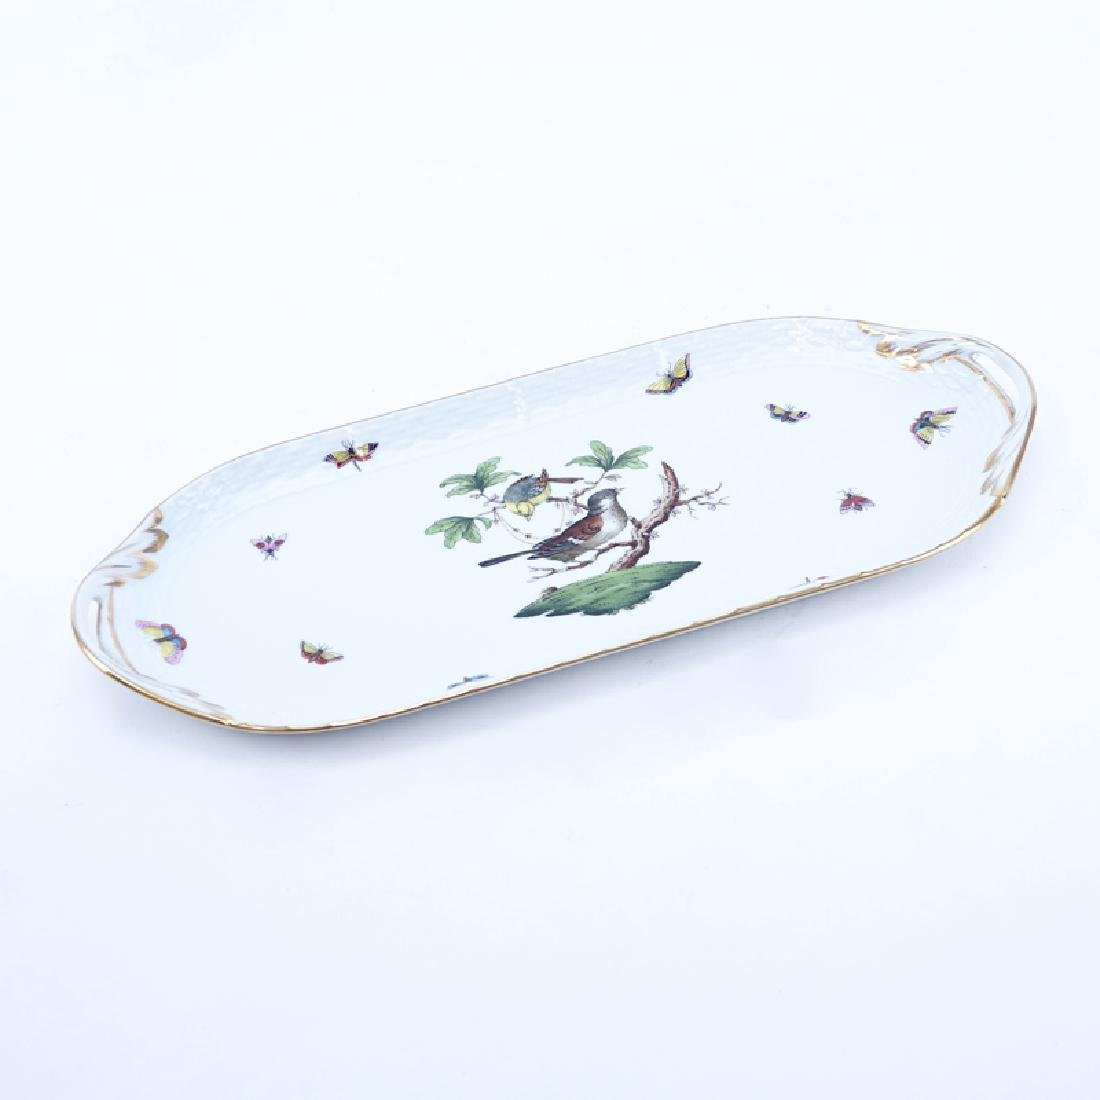 Herend Hand painted Porcelain Tray. Signed and numbered